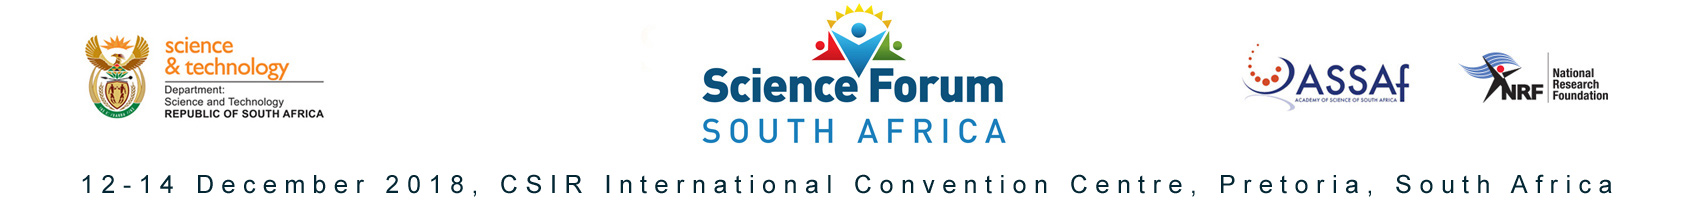 Science Forum South Africa